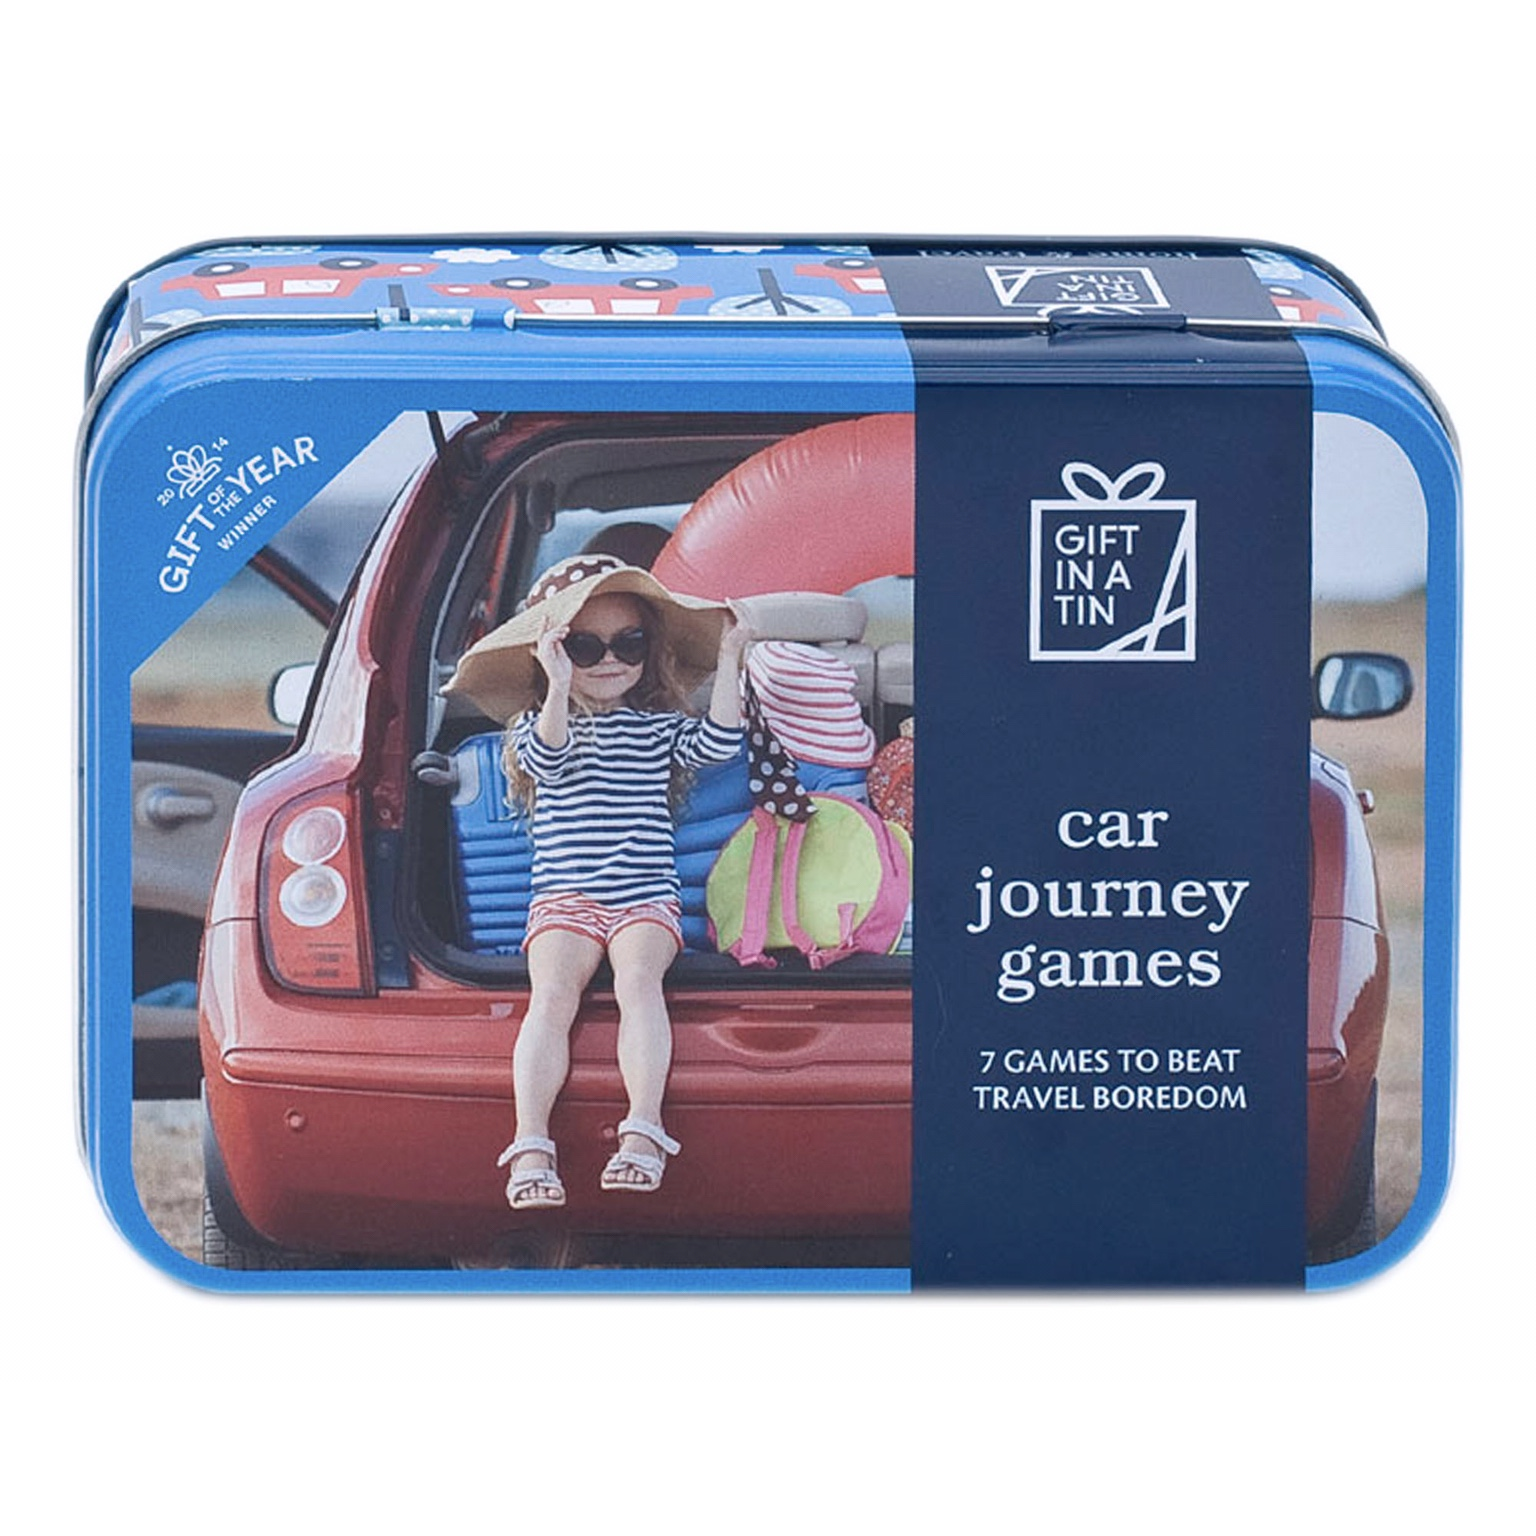 'Car Journey Games' Gift in a Tin